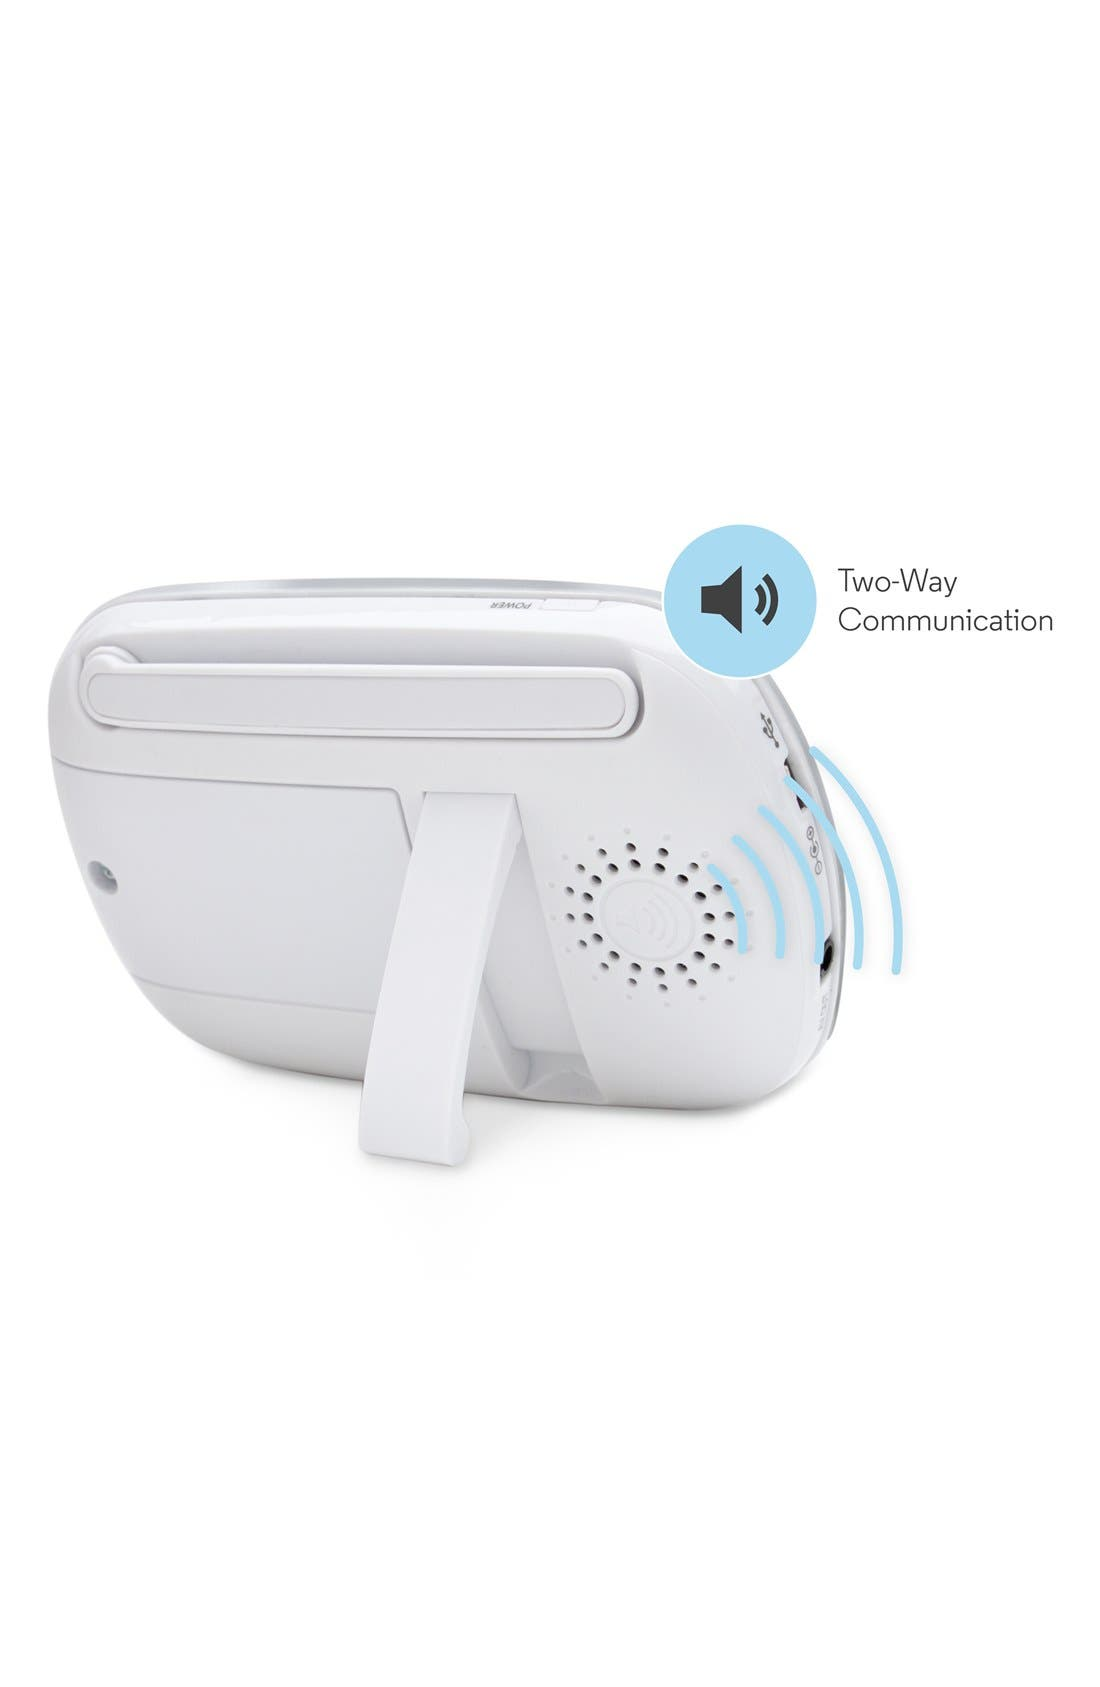 MBP 33S Wireless Digital Video Baby Monitor,                             Alternate thumbnail 6, color,                             WHITE/ SILVER TRIM